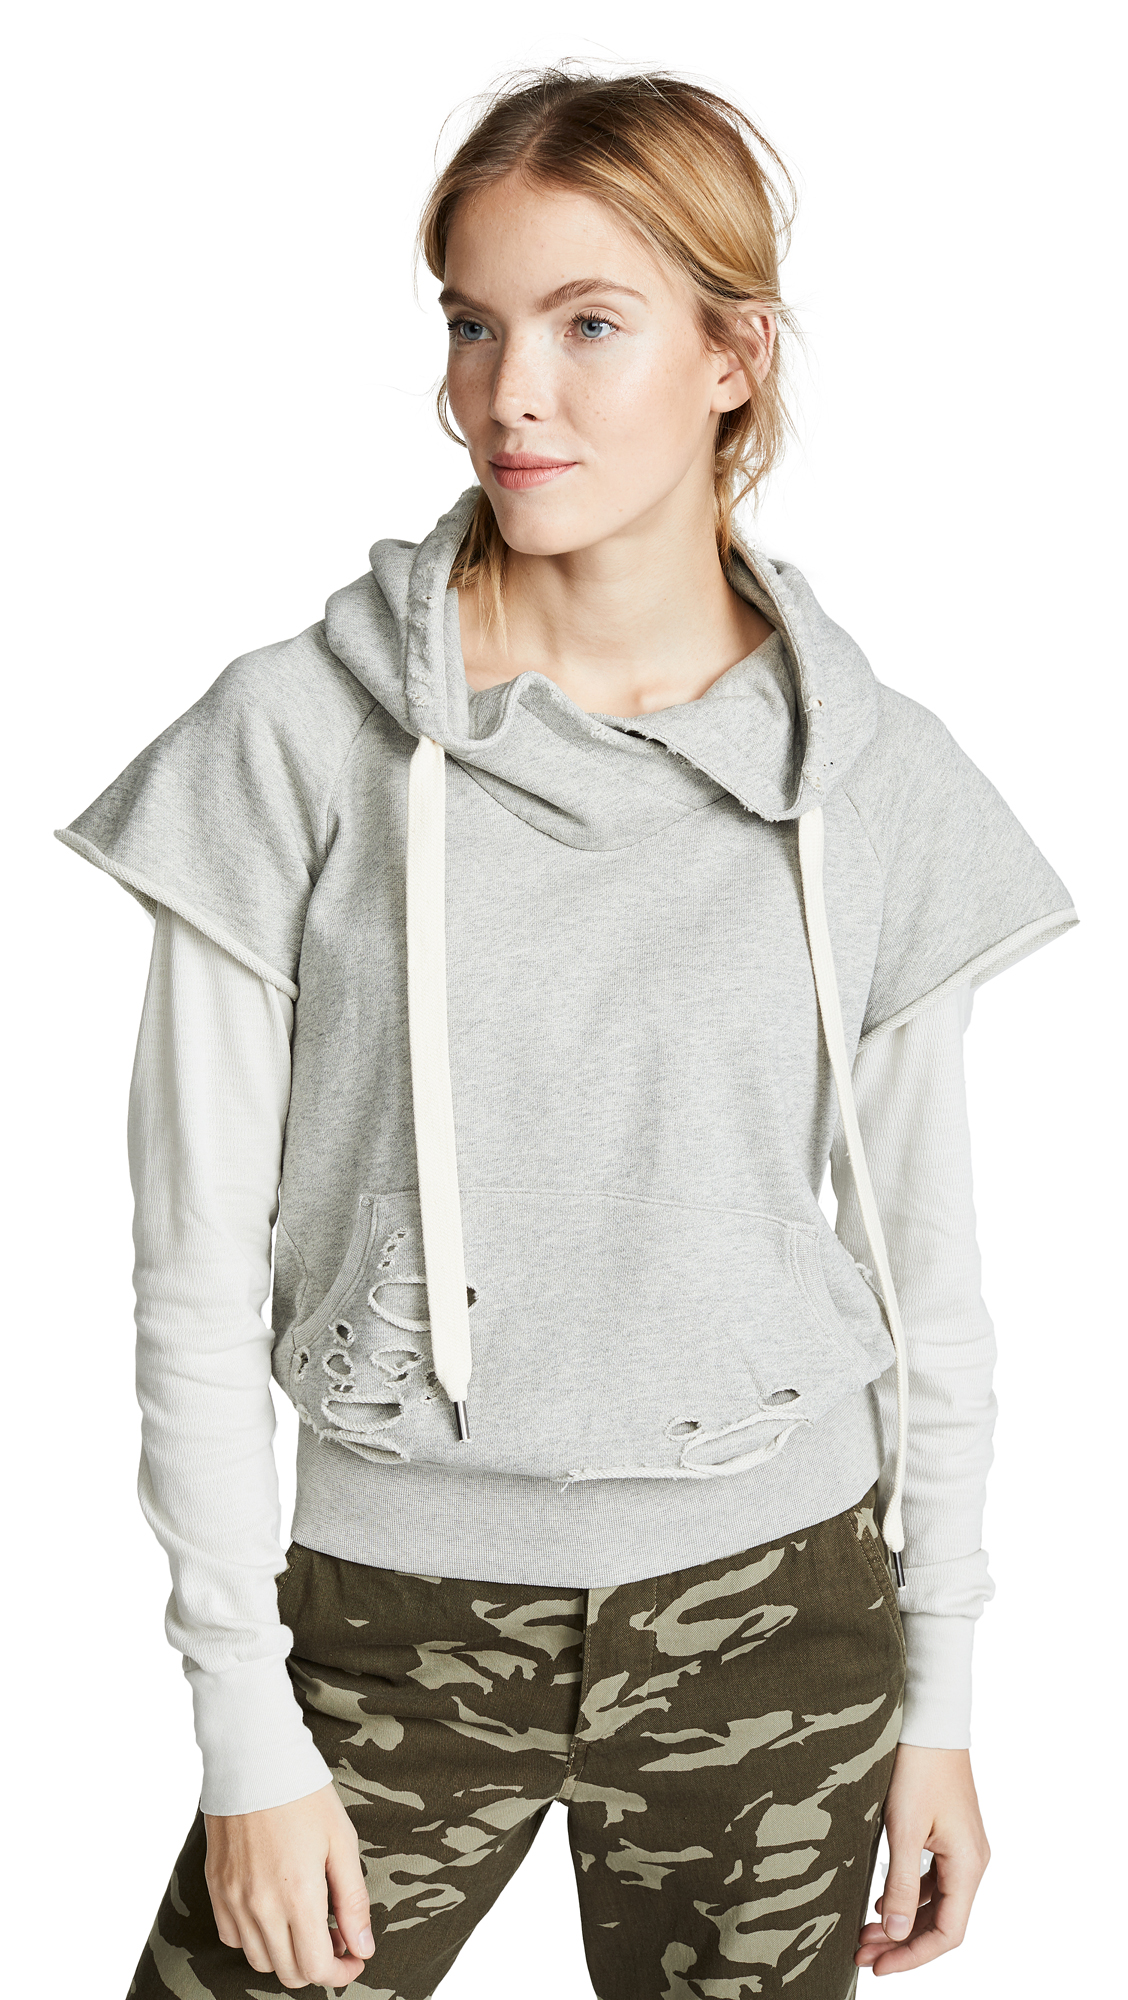 NSF Ray Jersey Sleeve Pullover Hoodie in Heather Grey/Soft White